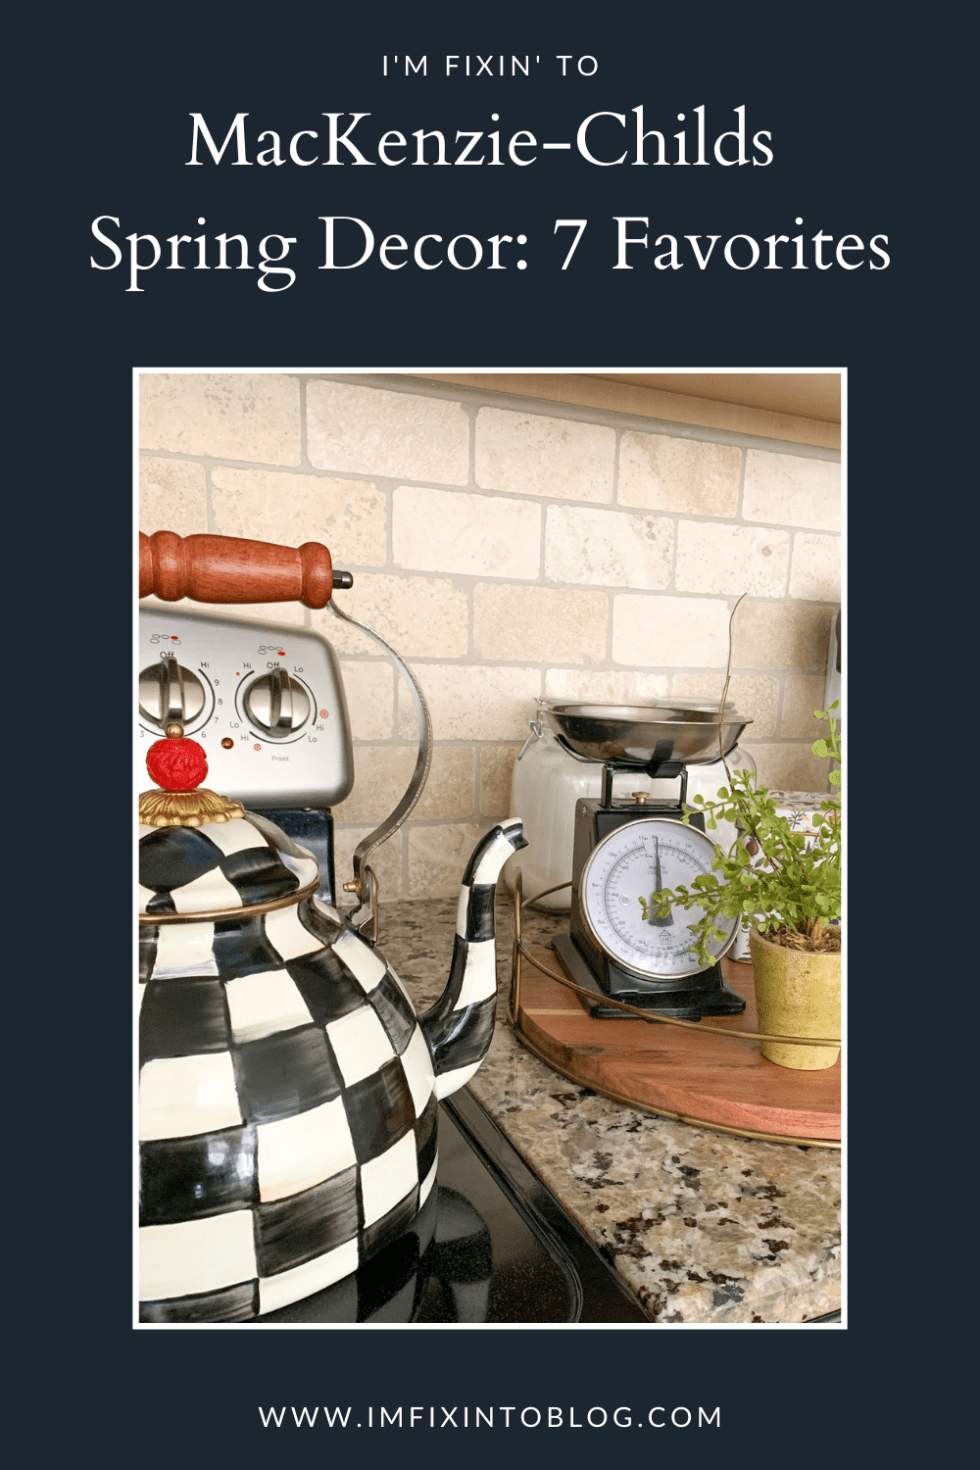 MacKenzie-Childs Spring Decor: 7 Favorites - I'm Fixin' To - @imfixintoblog |  Mackenzie-Childs Spring Decor by popular NC life and style blog, I'm Fixin' To: Pinterest image of a Mackenzie-Childs teapot.